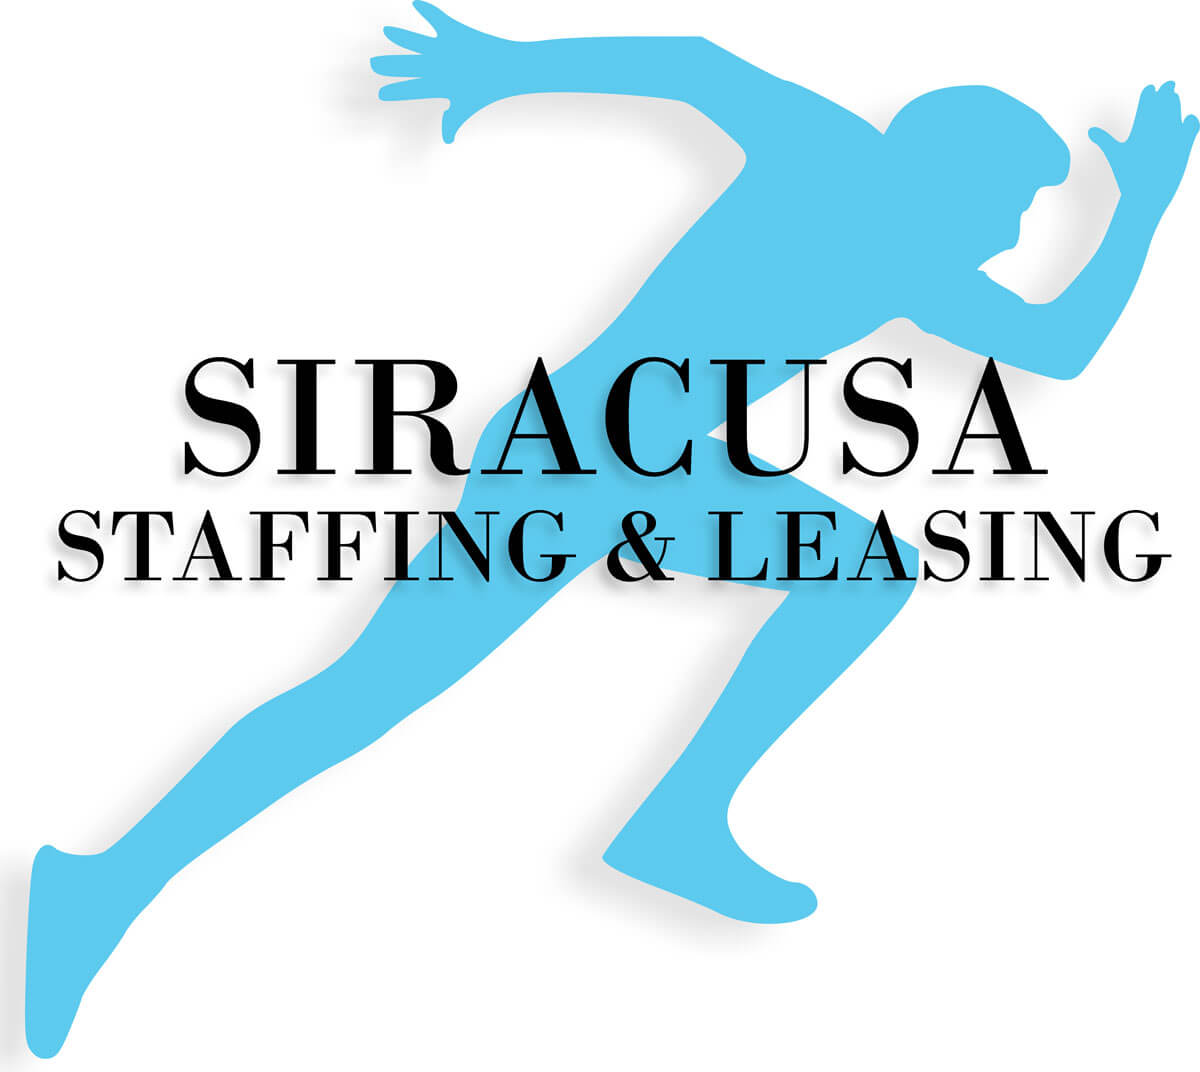 Why-Choose-staffing-and-leasing-services